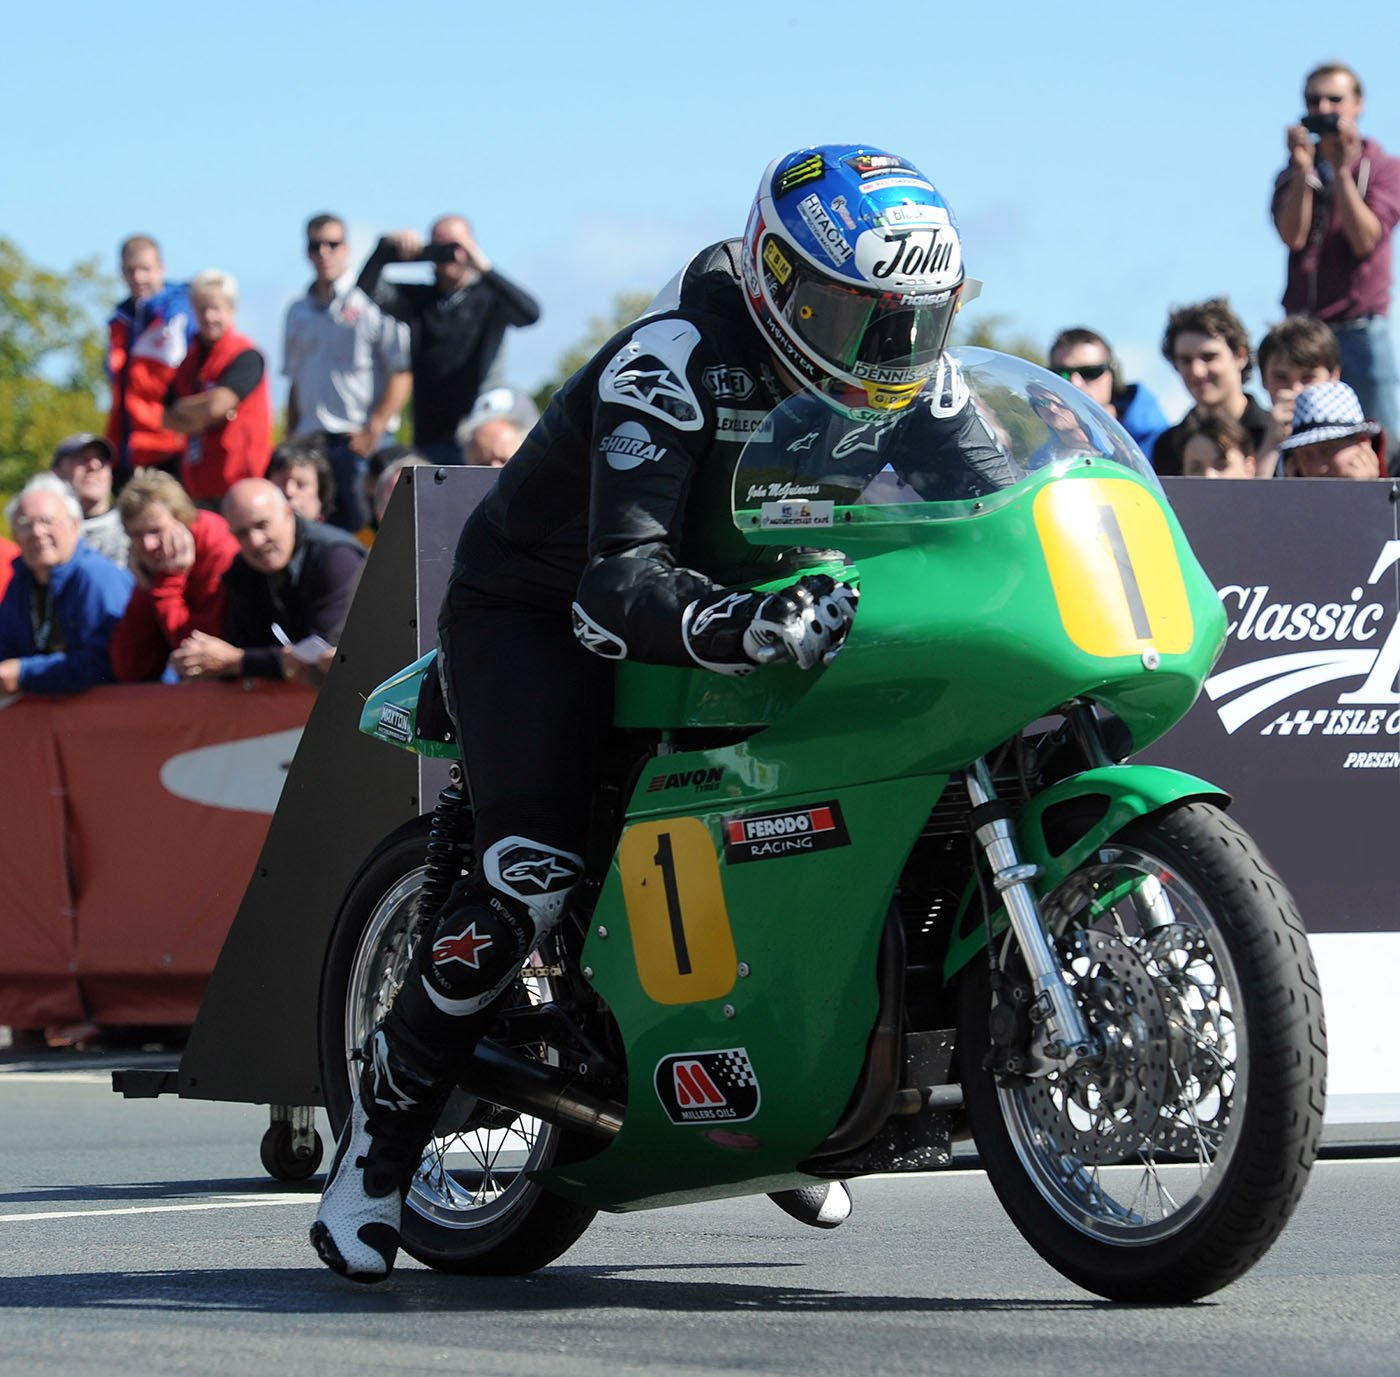 John McGuinness leaves the line at the beginning of the 500cc Classic TT race. Image from Pacemaker Press International